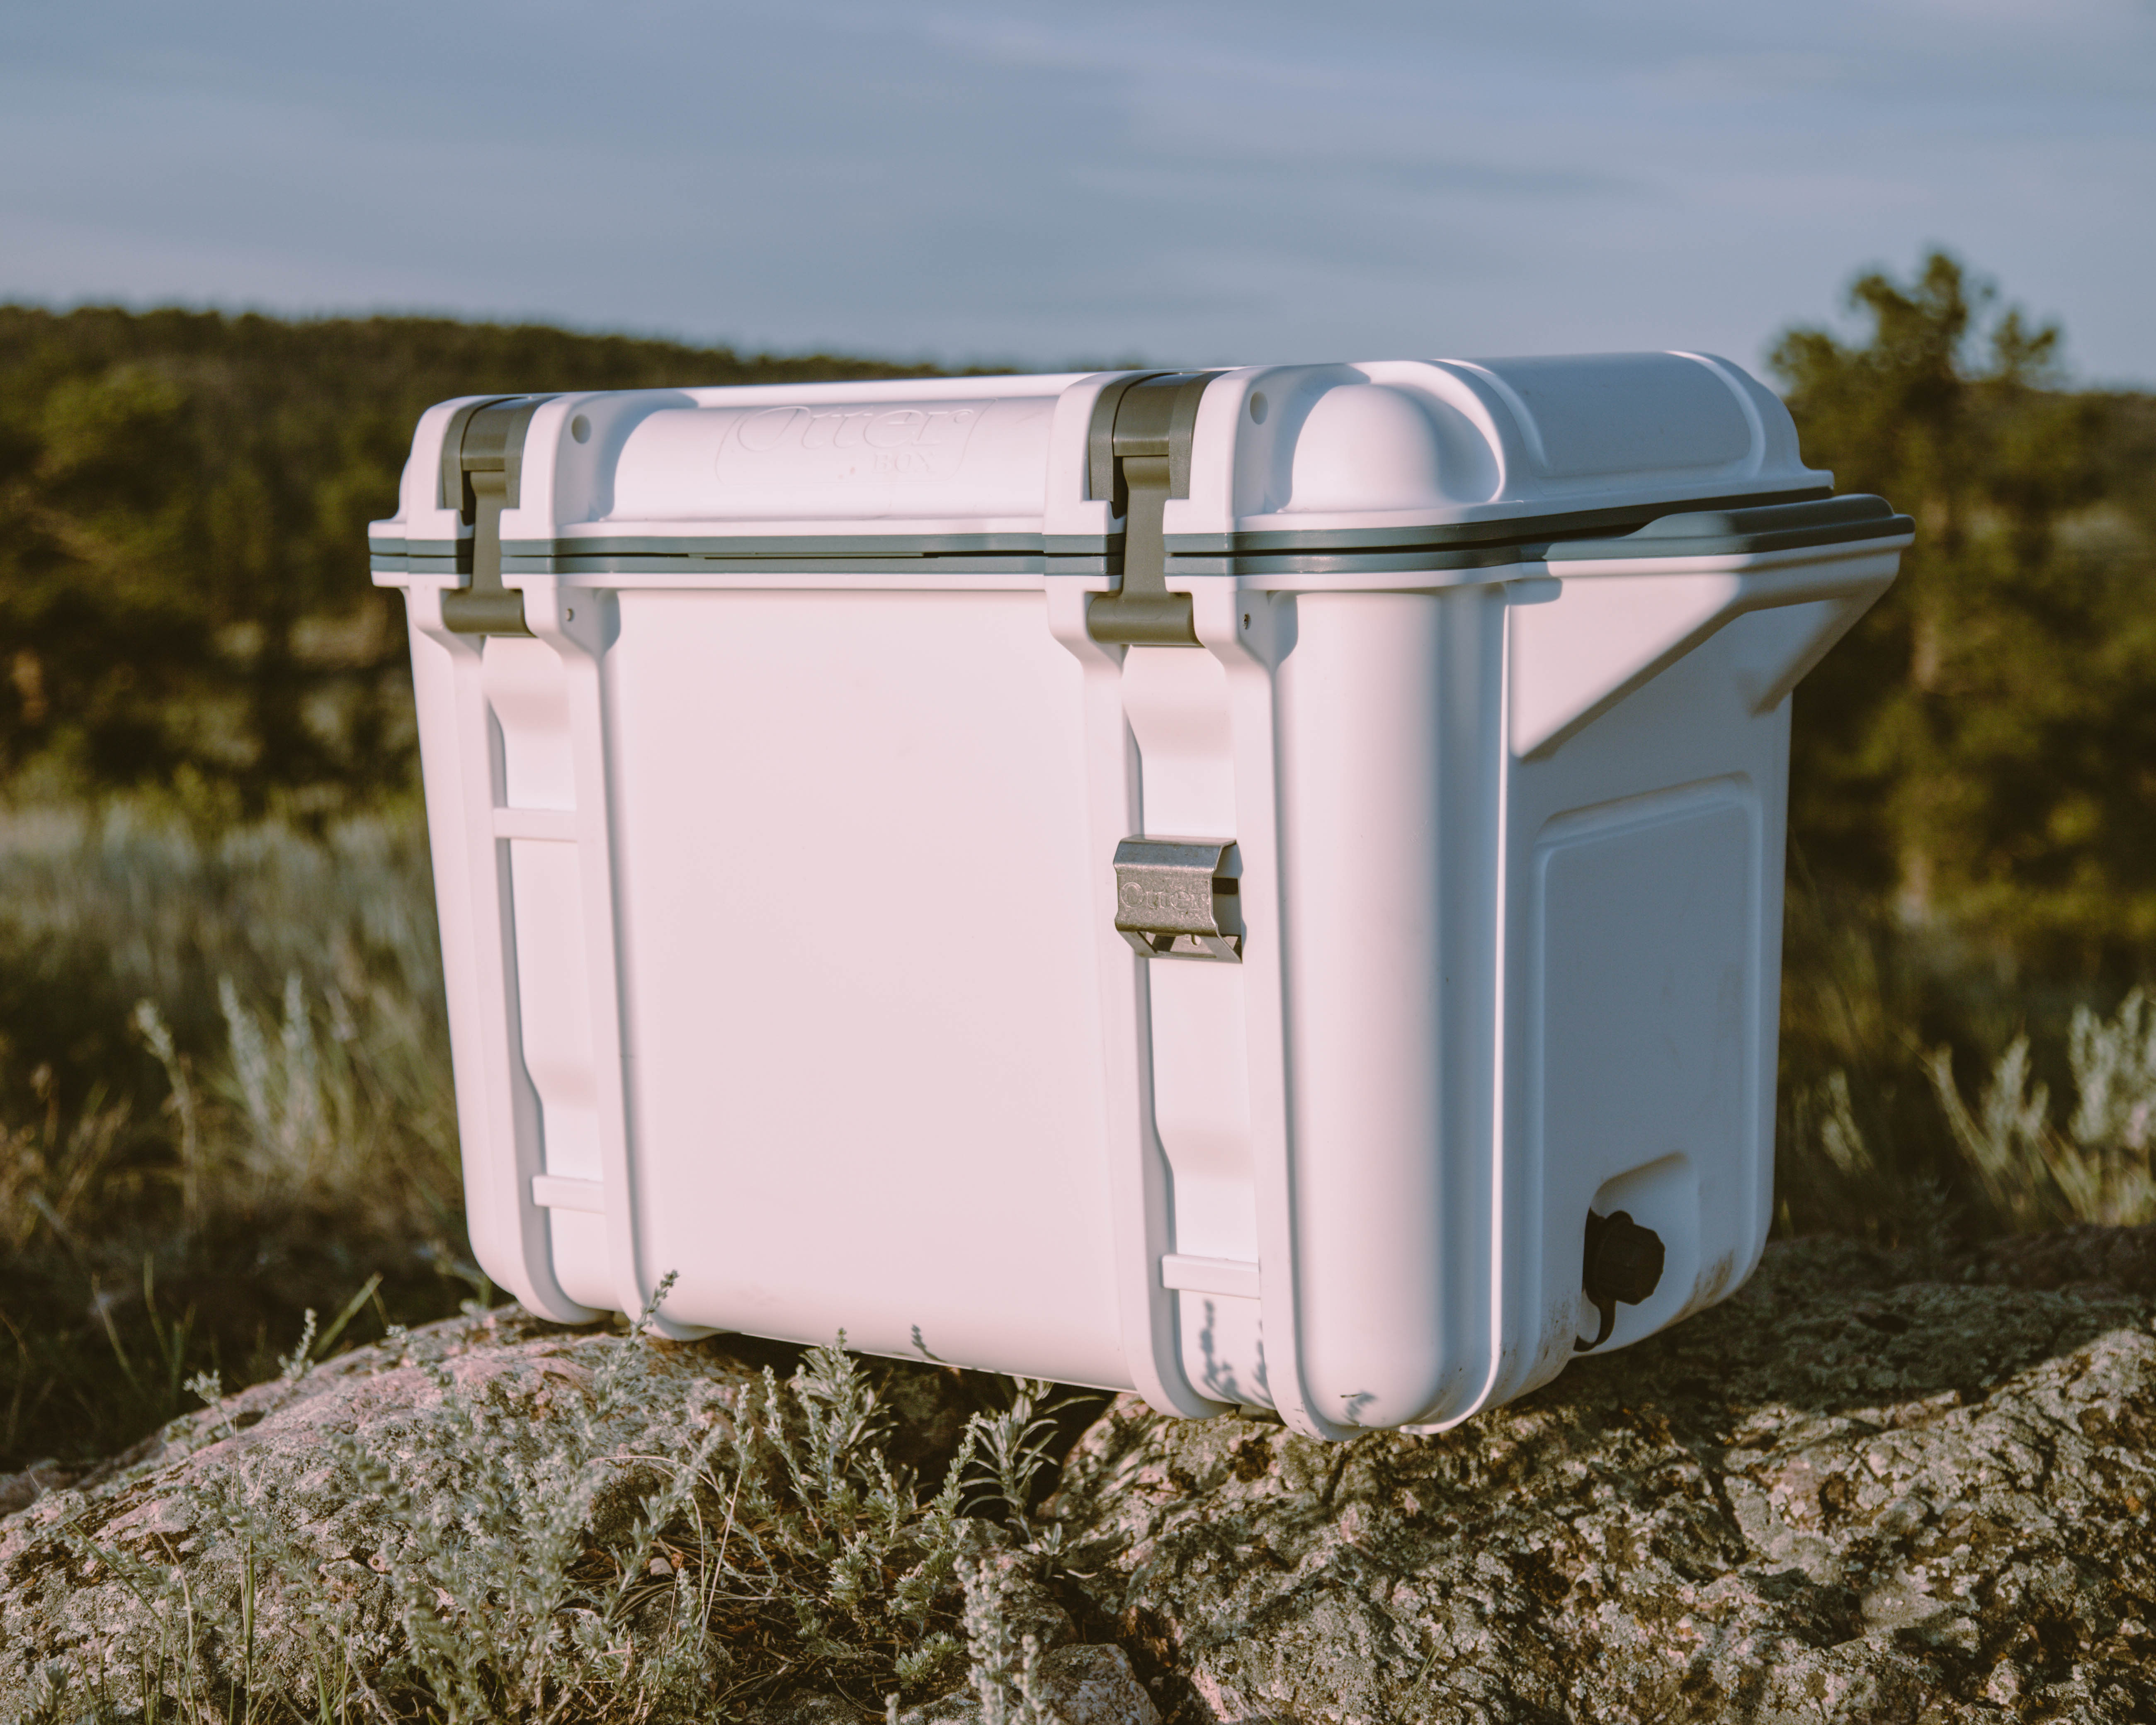 otterbox venture cooler on ground